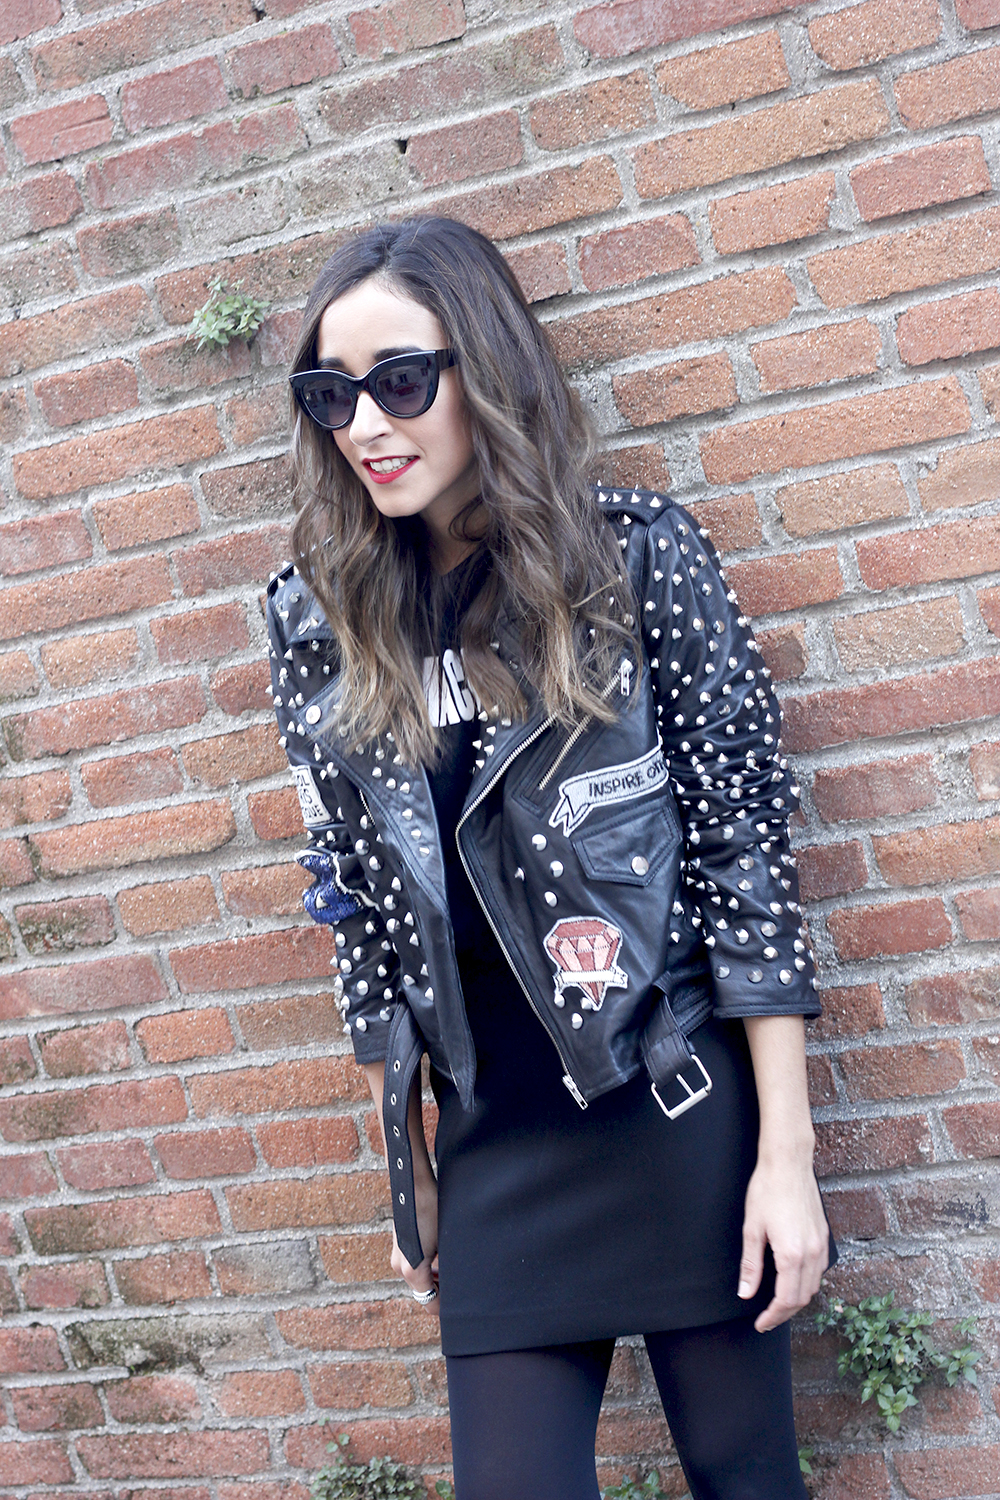 Leather jacket with studs and patches black skirt heels style fashion outfit12